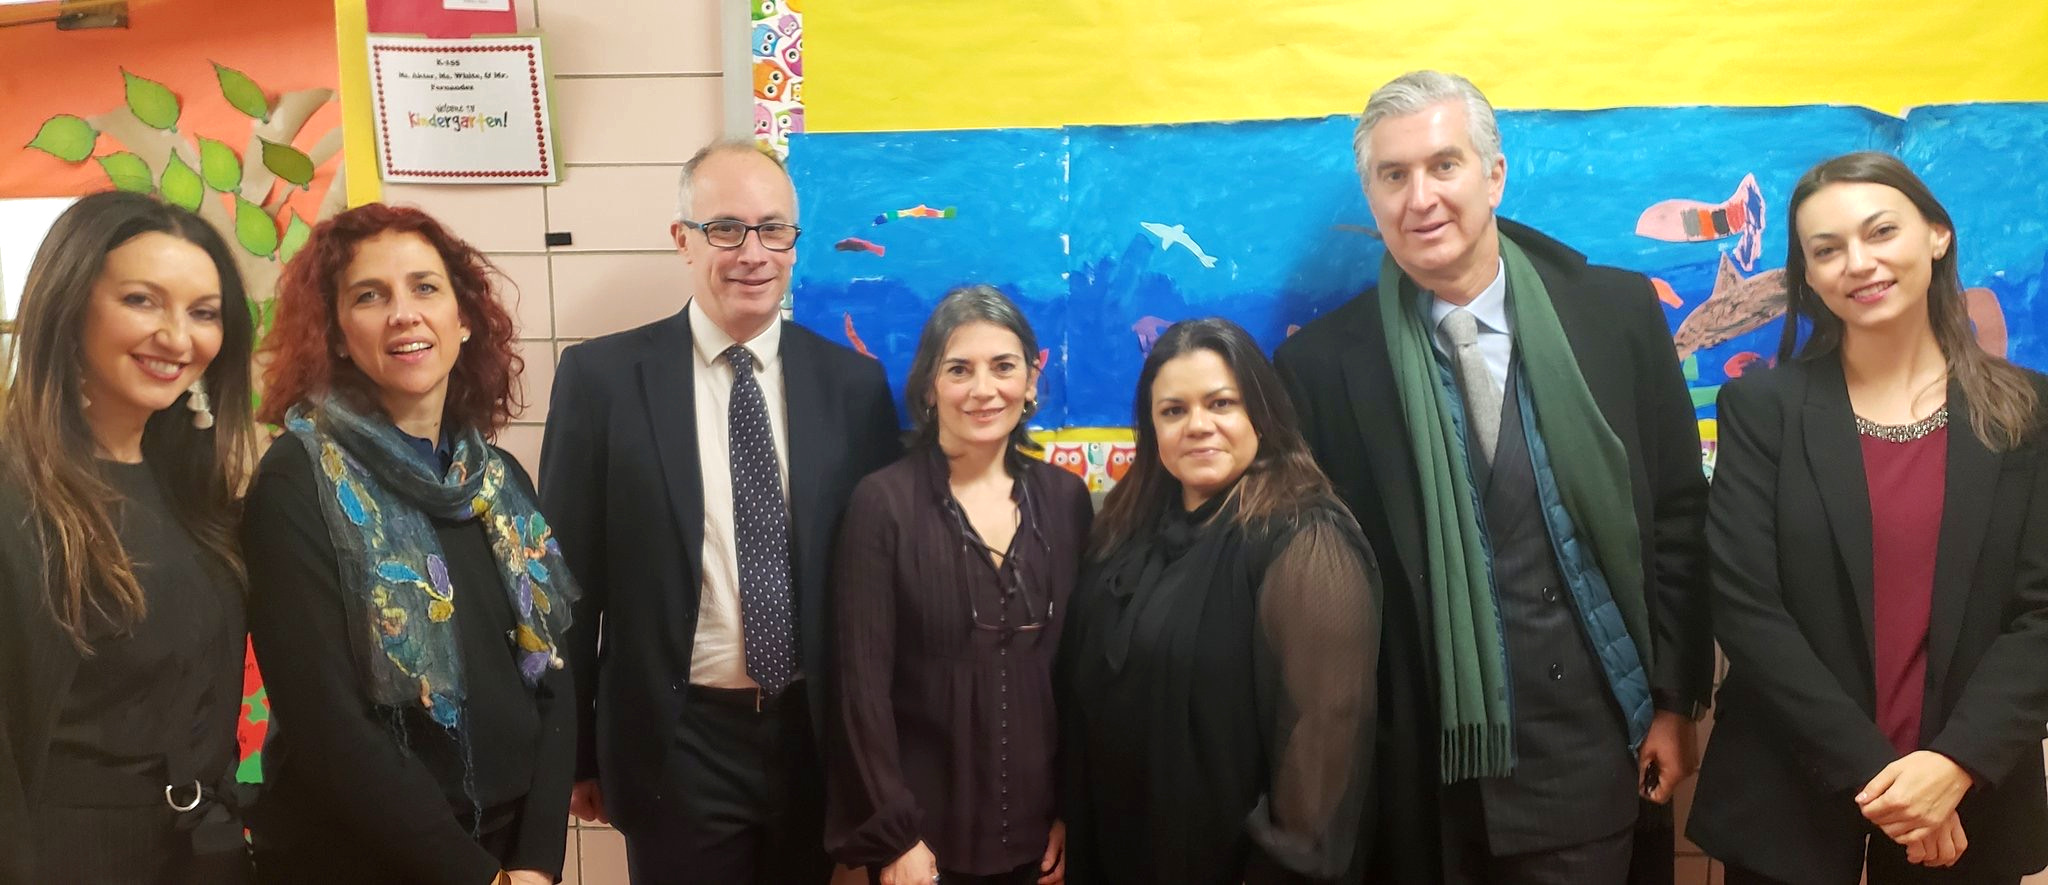 An honor to have the Delegation of the Italian Consulate in NY visit the Italian Program at PS242 - January 8, 2019